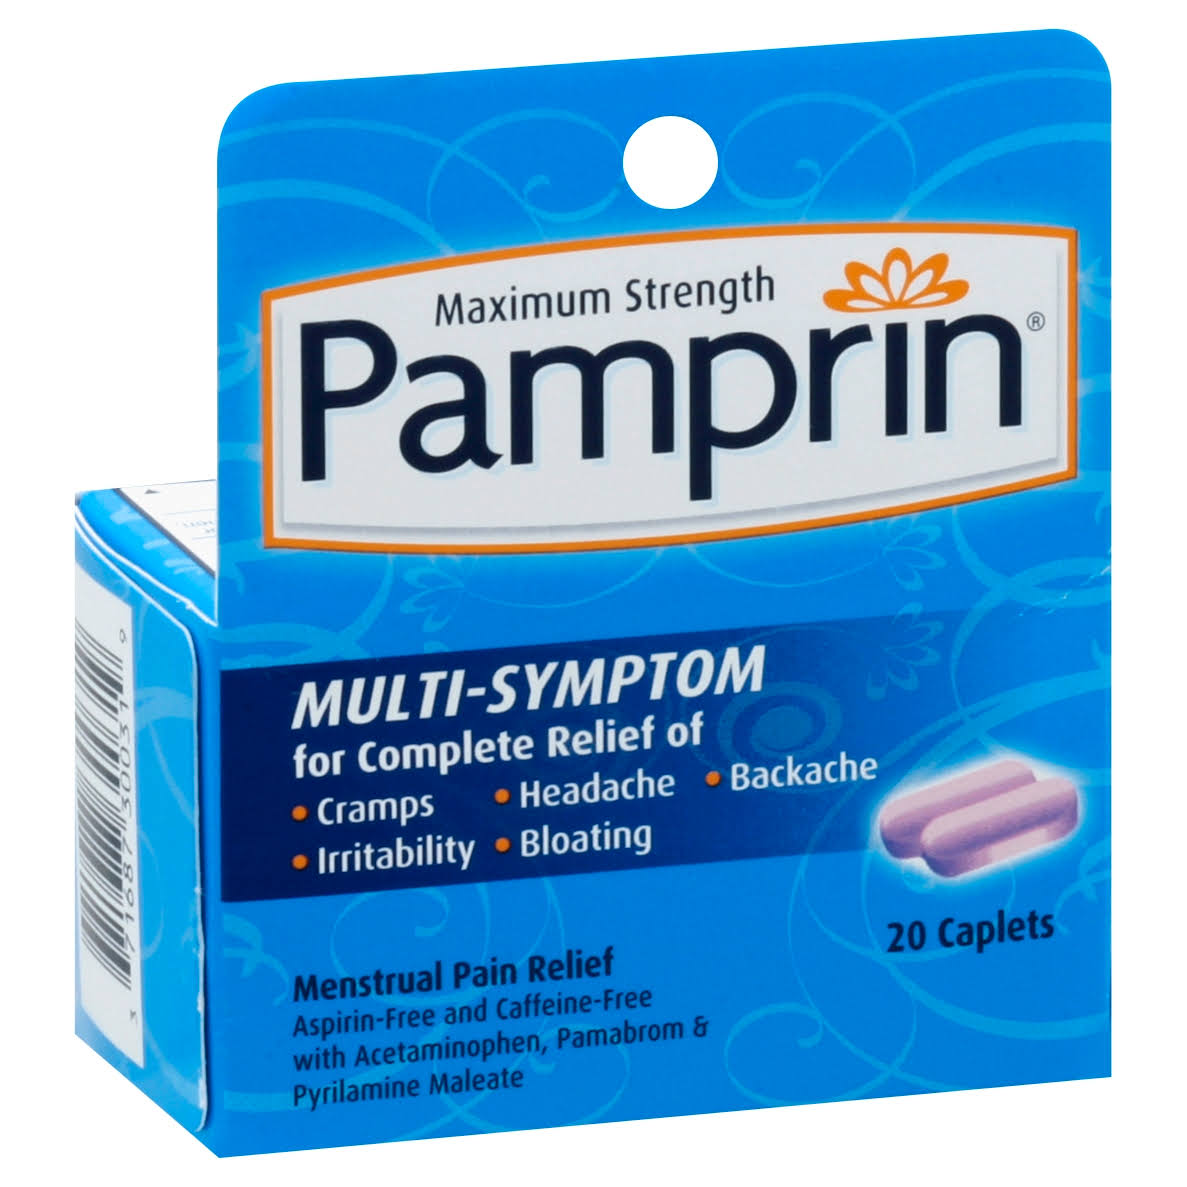 Pamprin Menstrual Pain Relief, Maximum Strength, Caplets - 20 caplets